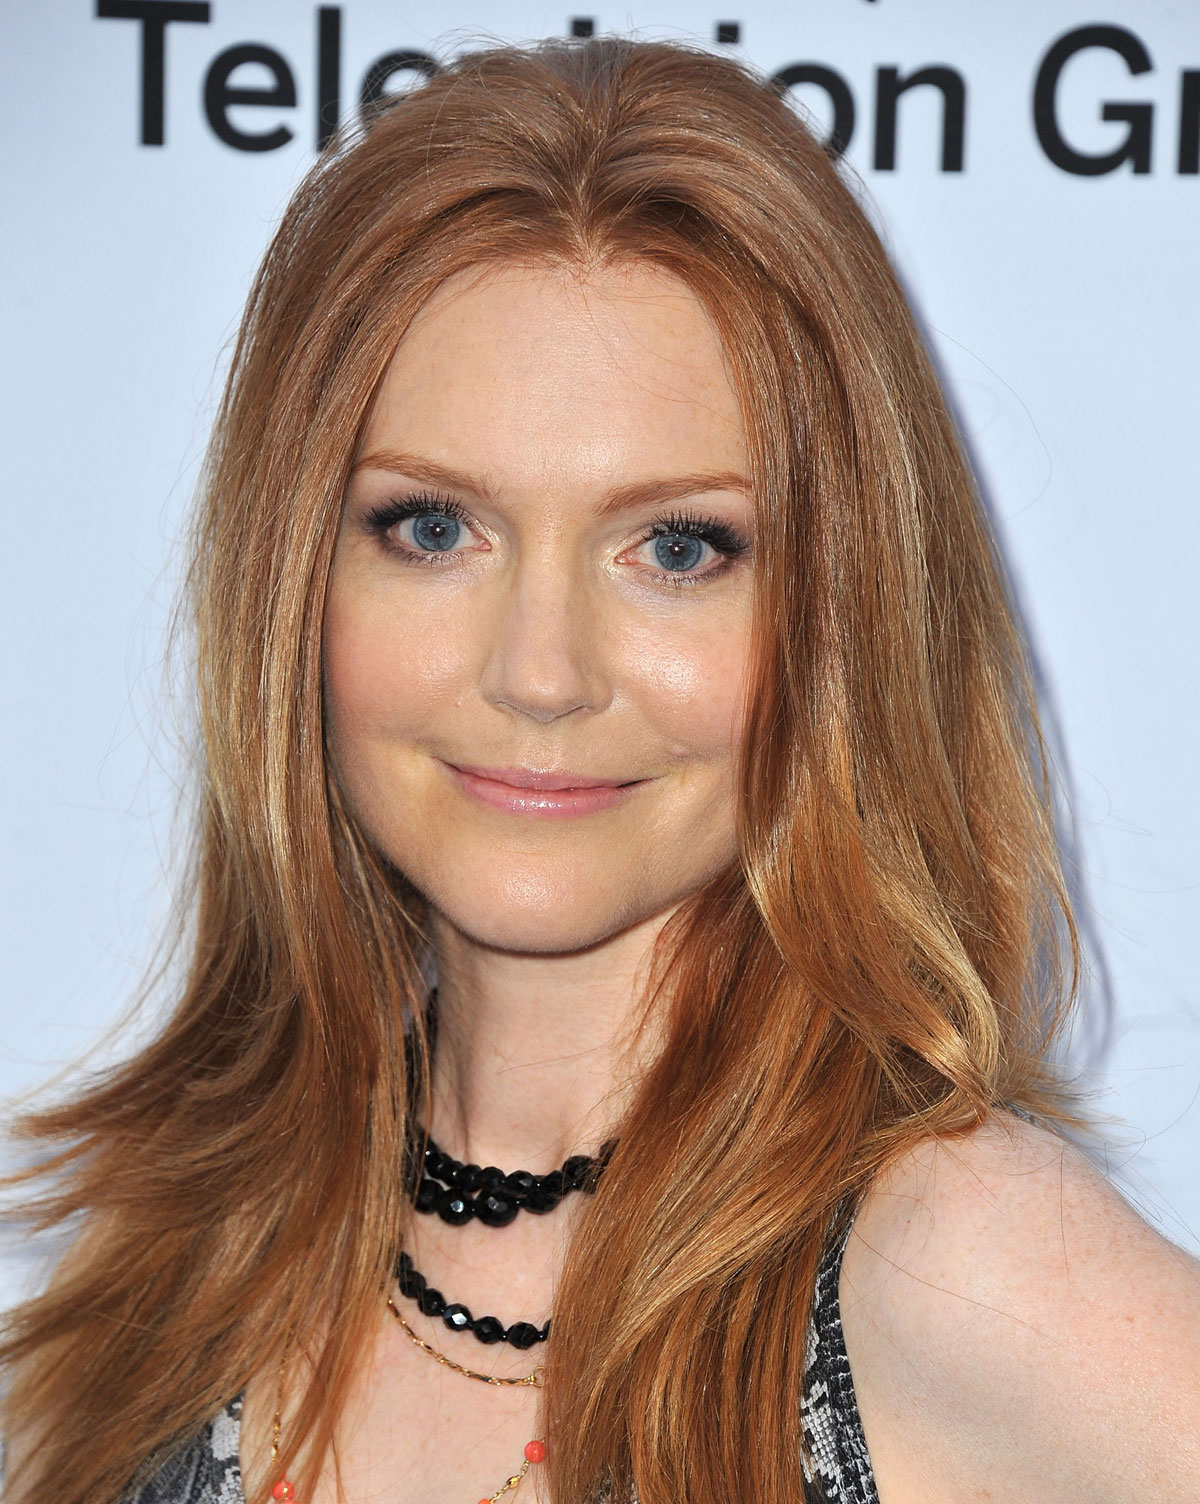 1200x1504 - Darby Stanchfield Wallpapers 21